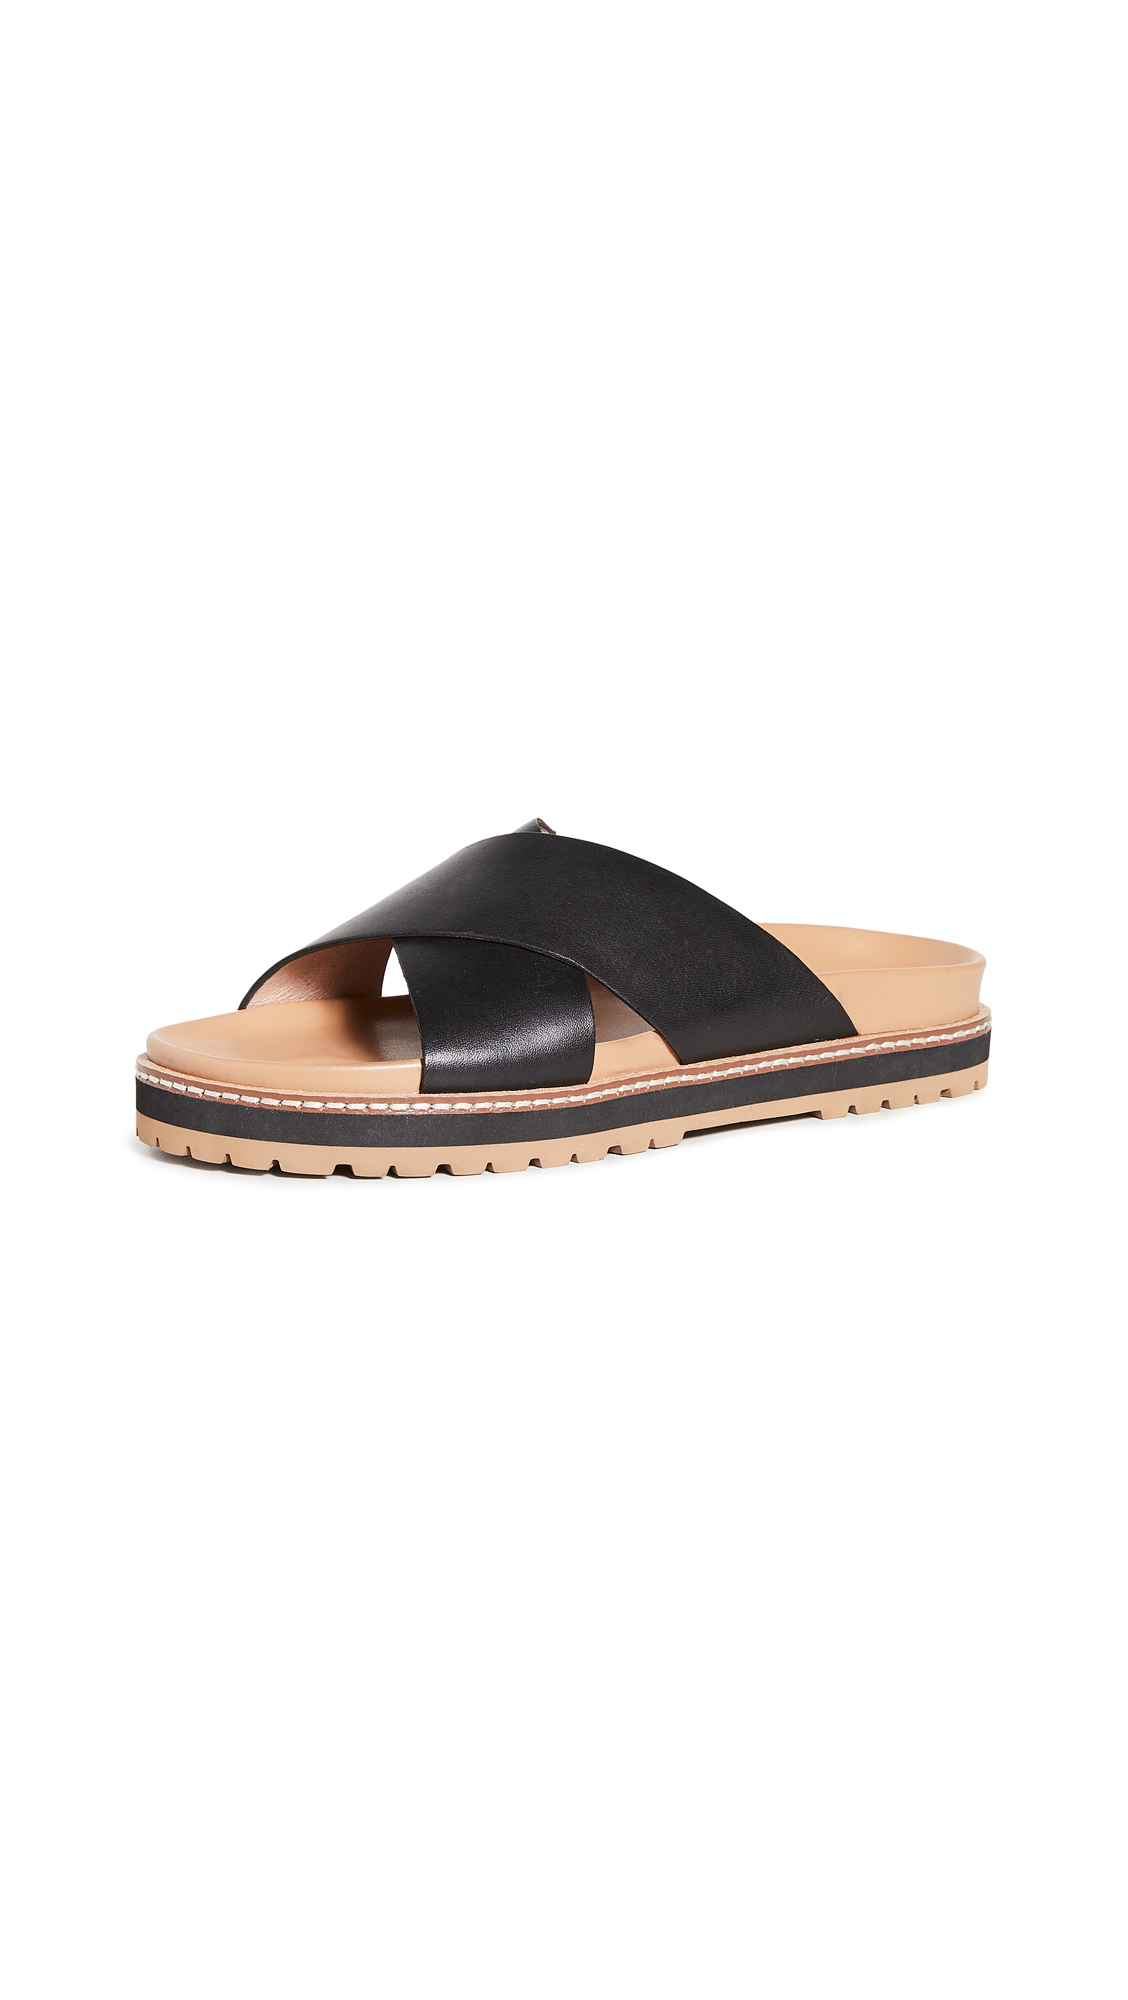 Madewell PATTY CRISSCROSS LUG SANDALS